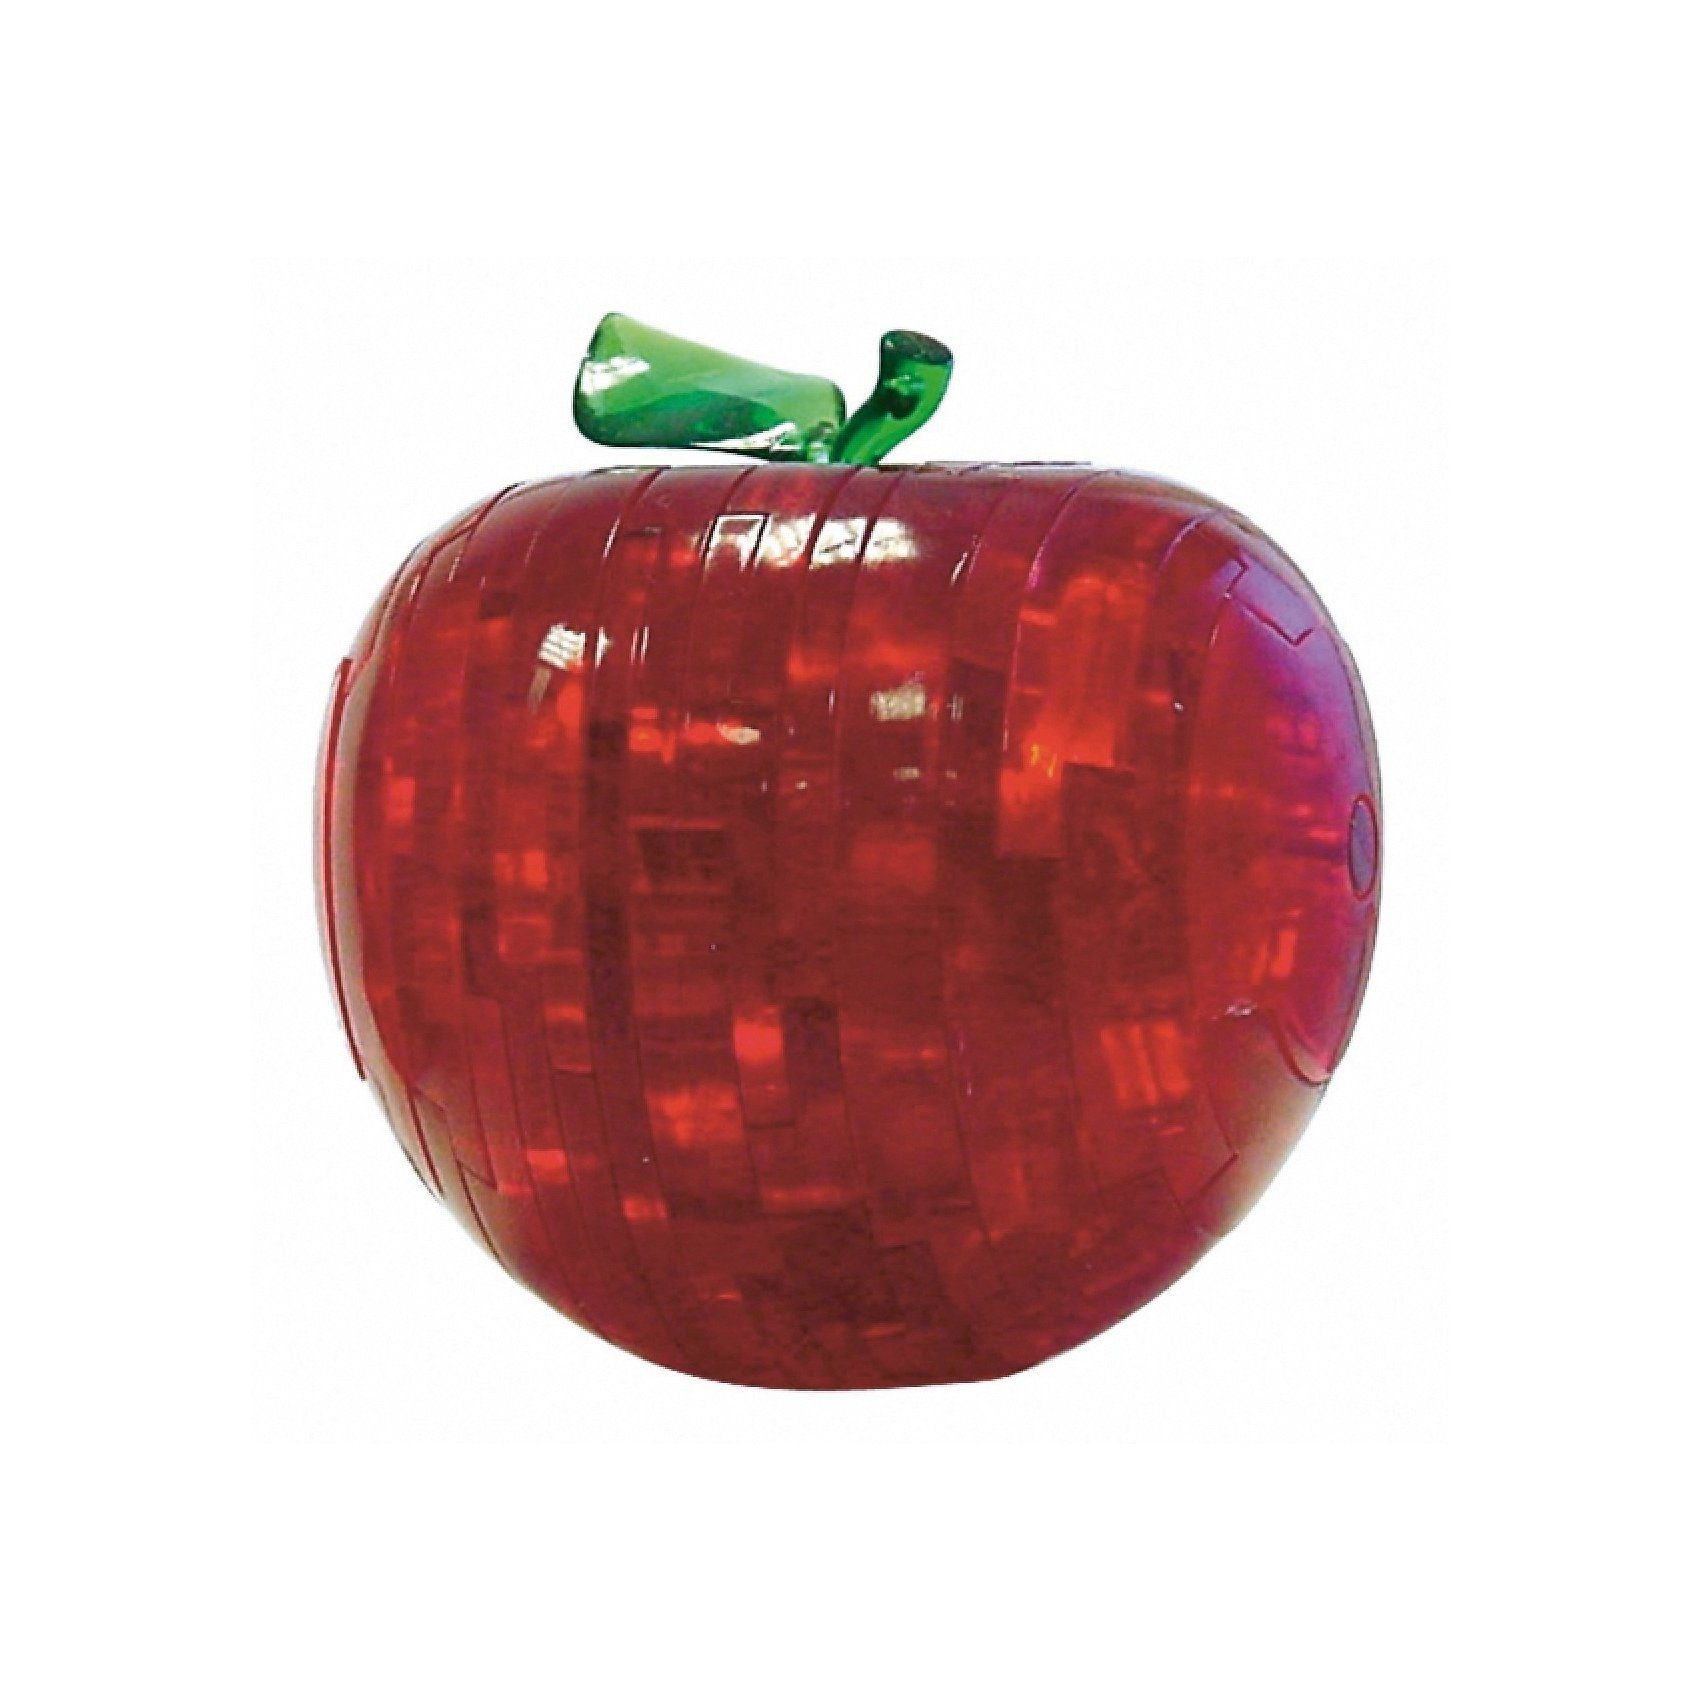 Crystal Puzzle - roter Apfel